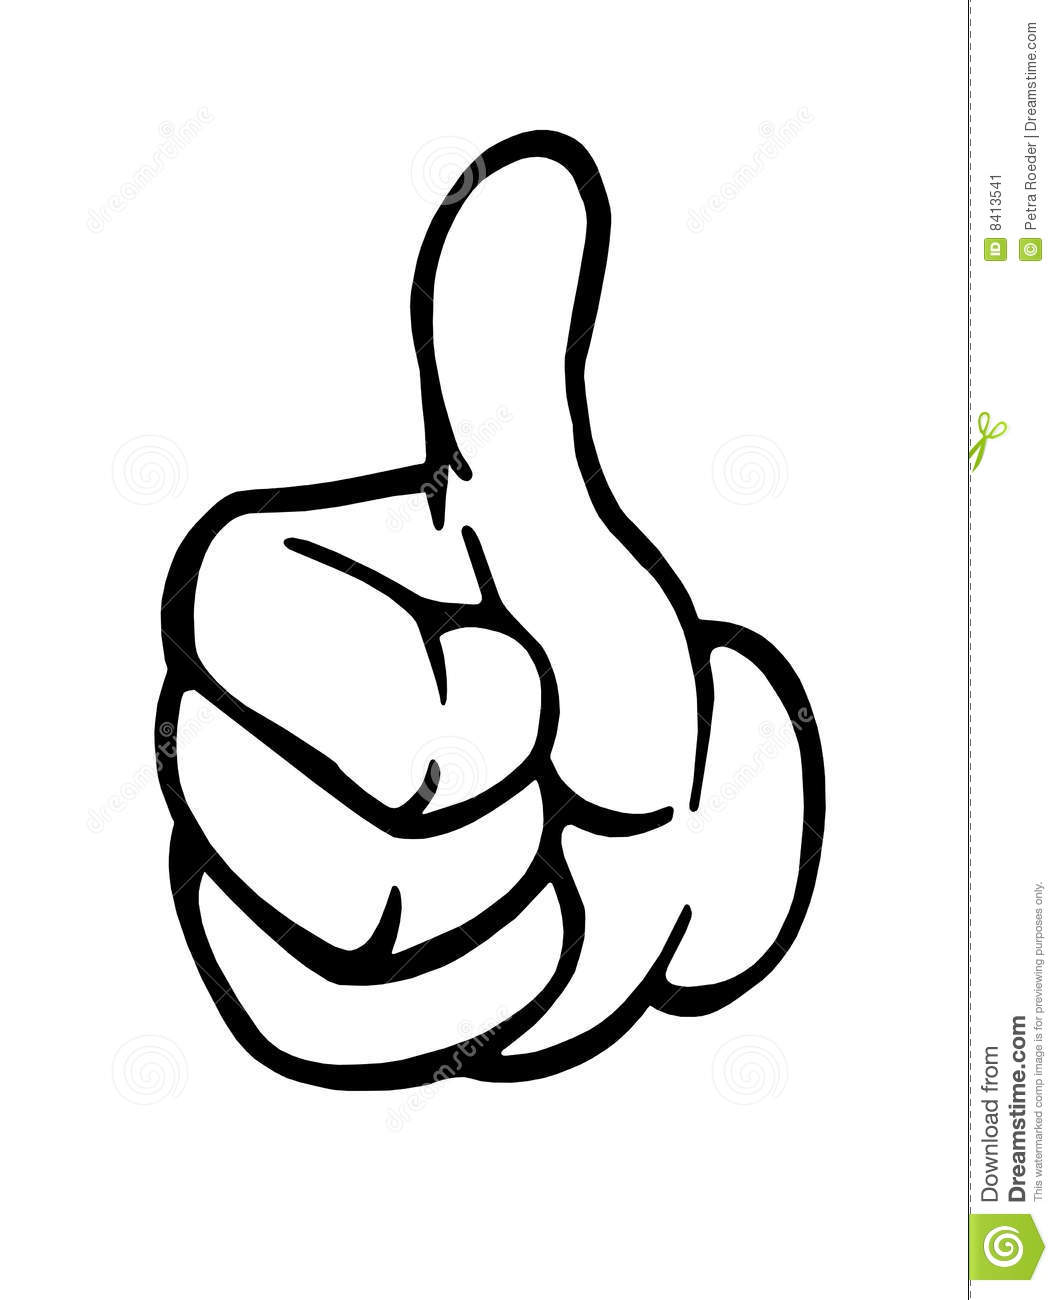 1058x1300 Thumbs Up Sign Cliparts